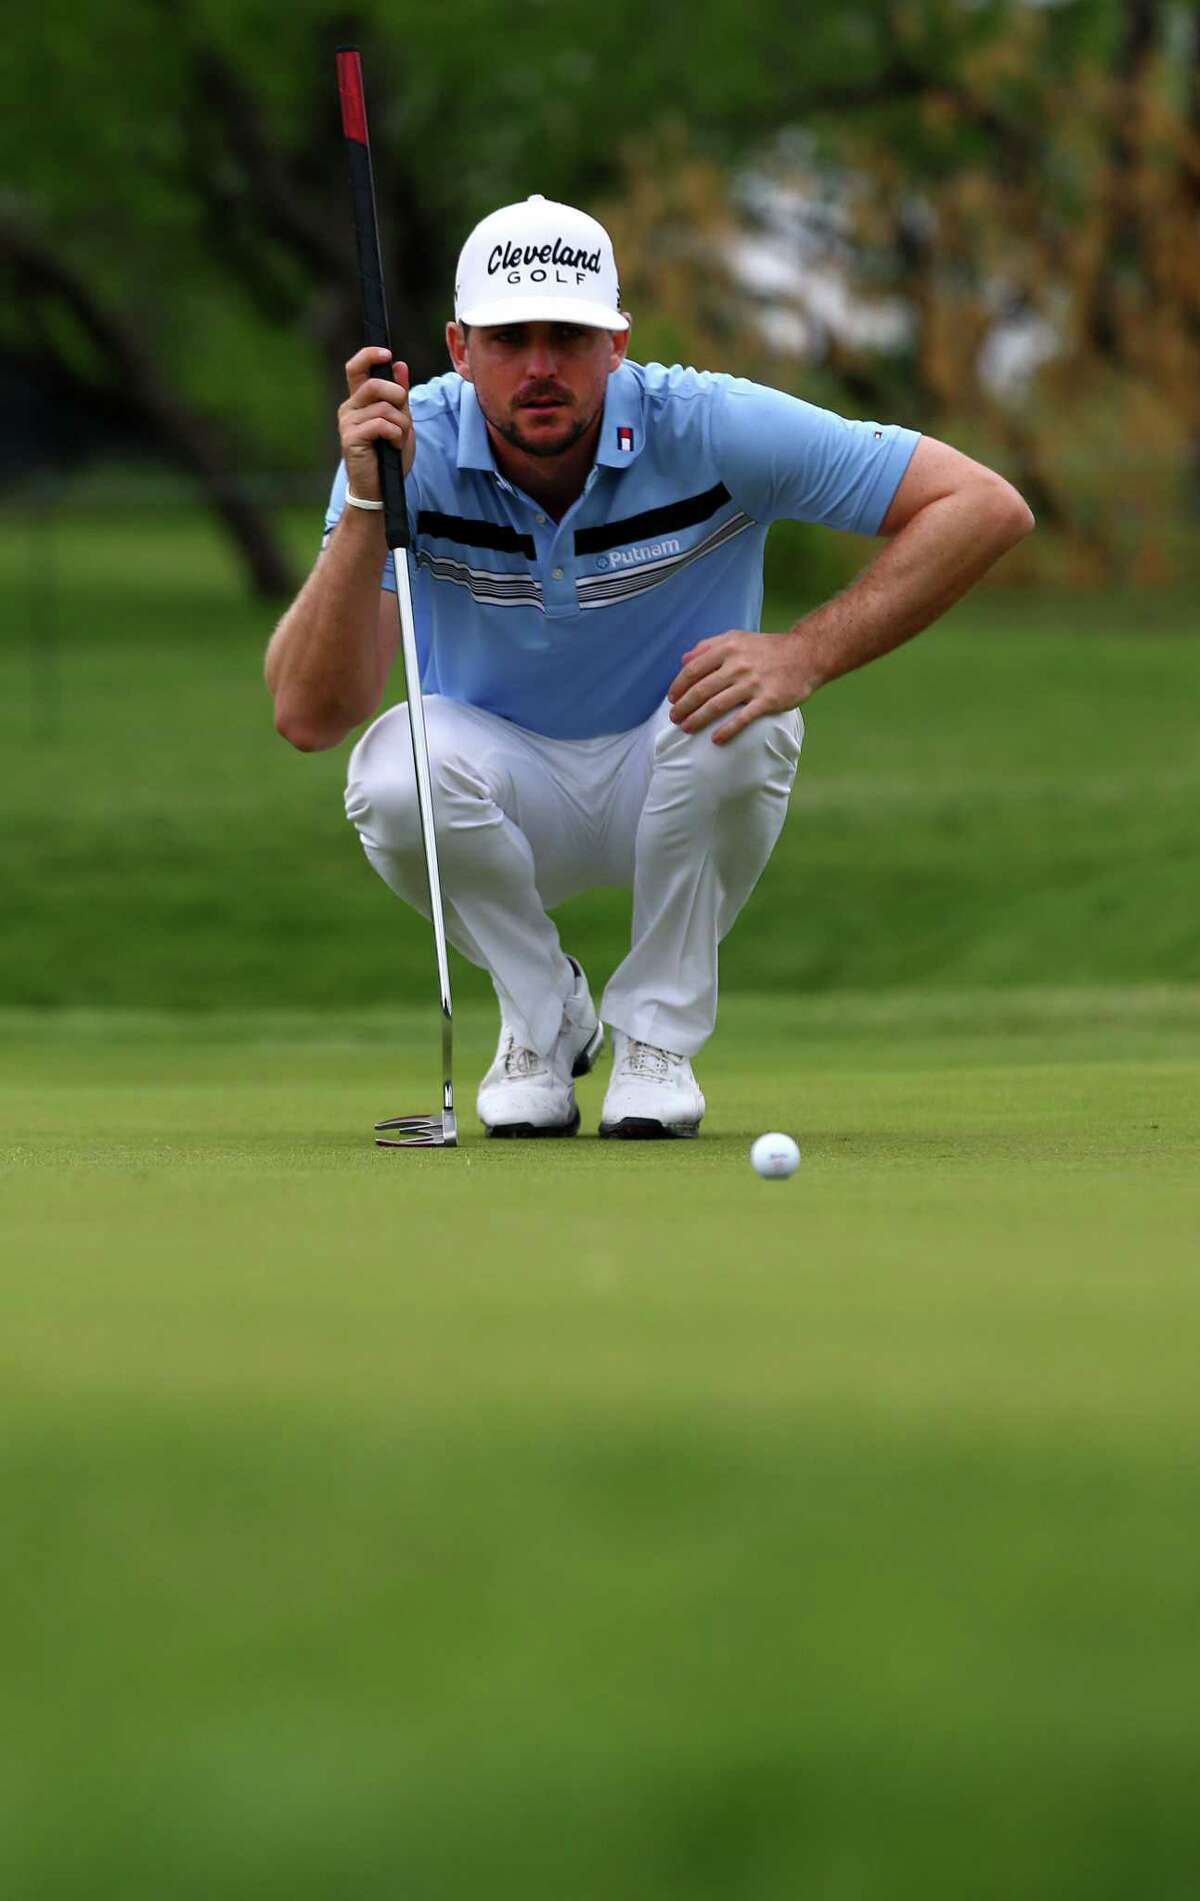 Despite consecutive bogeys, Keegan Bradley shot 10-under 60 in the first round of the Byron Nelson Championship.